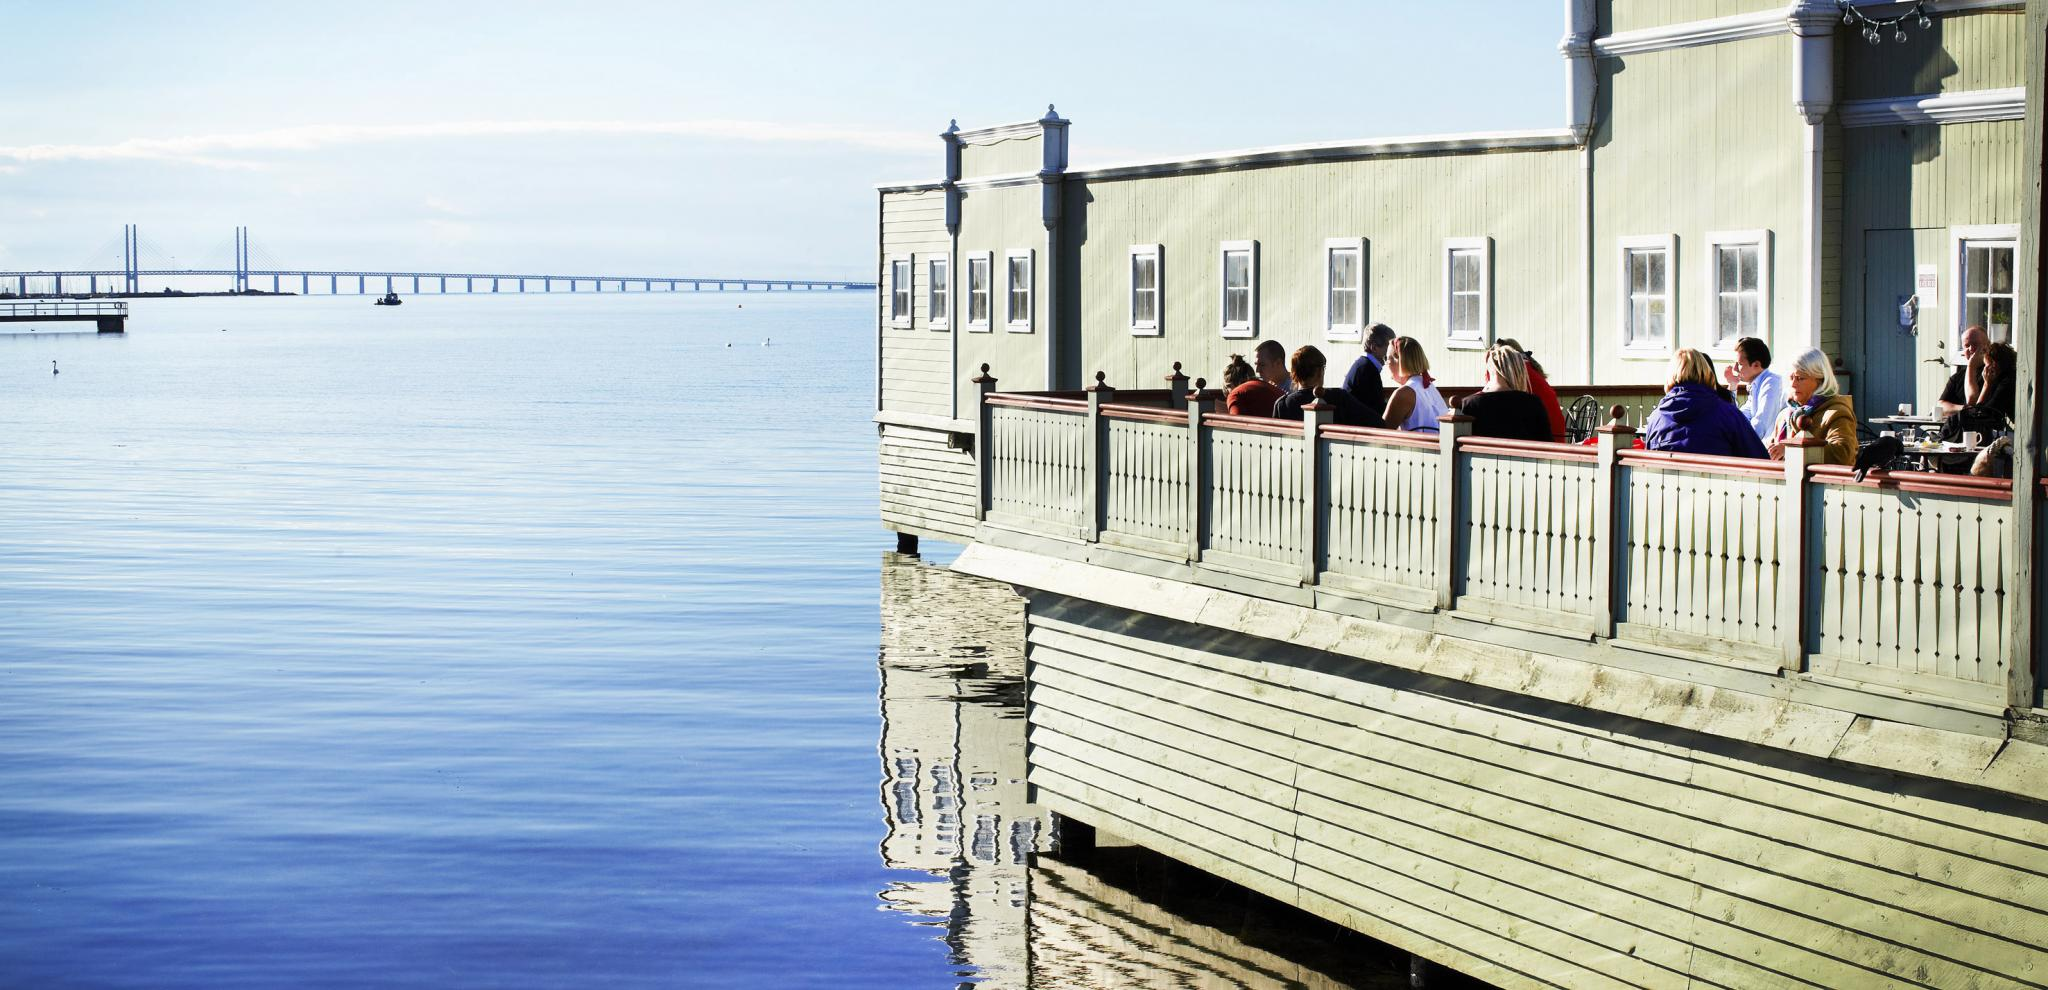 Ribersborg kallbadhus on a summer day © Oskar Falck